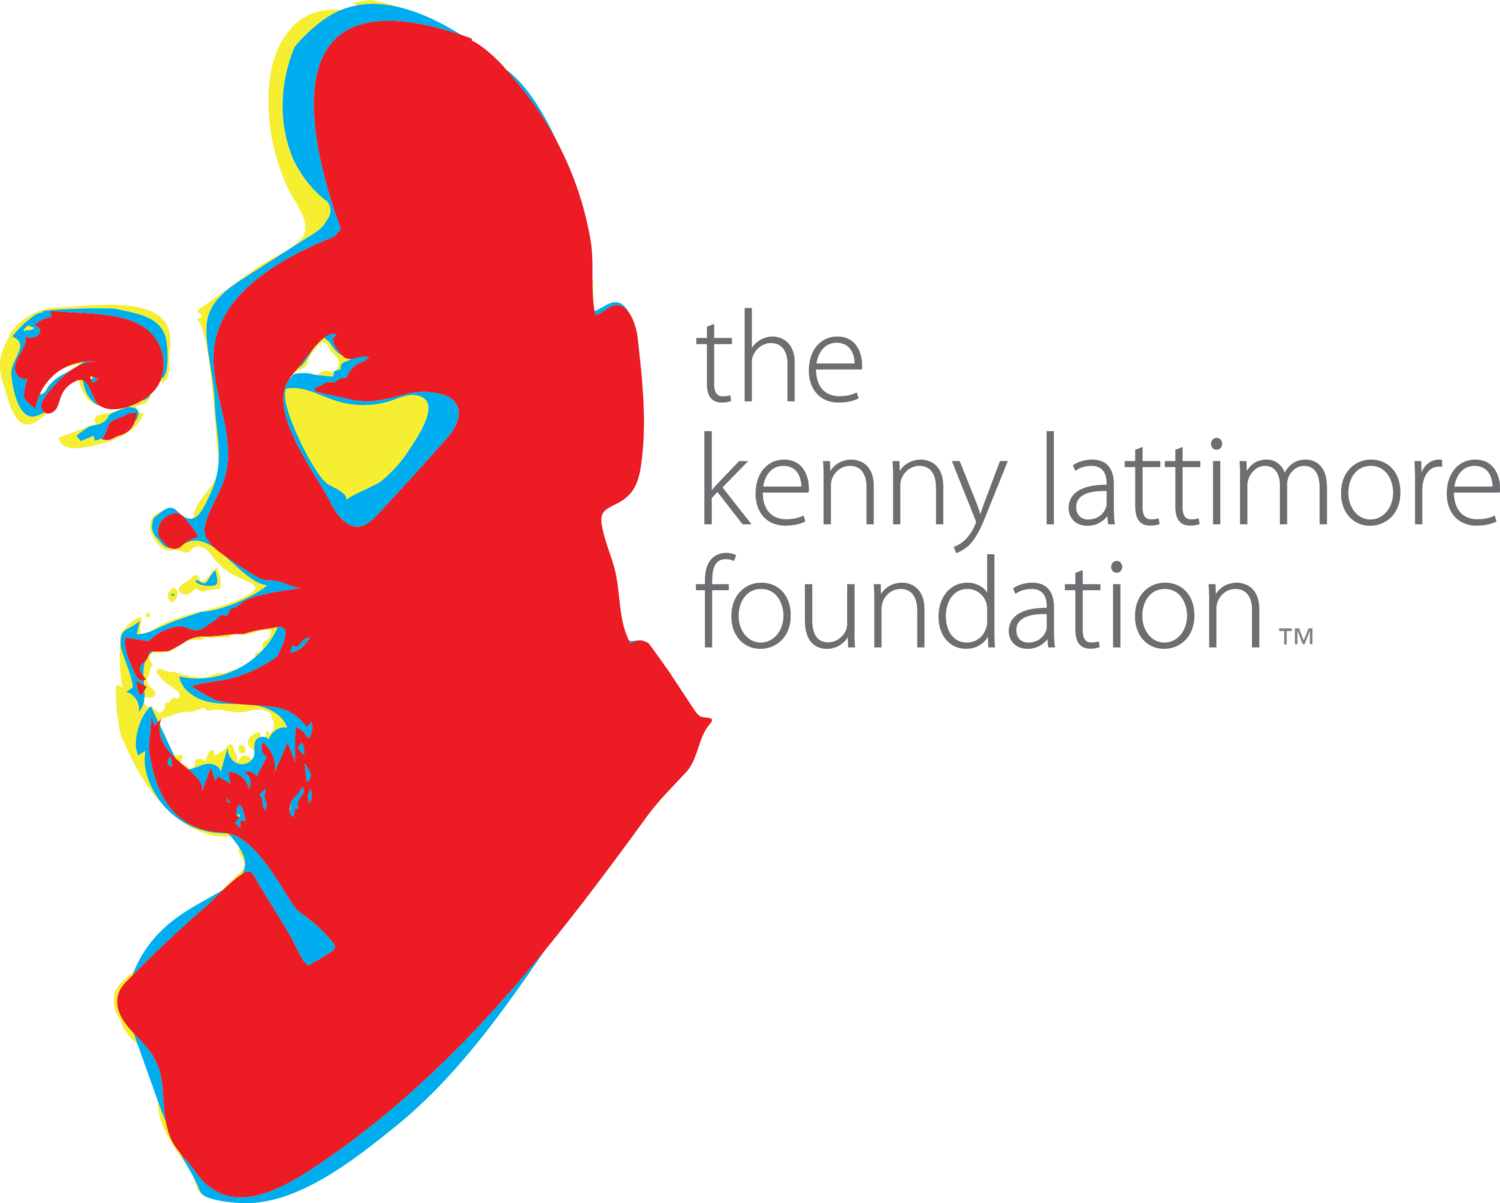 The Kenny Lattimore Foundation